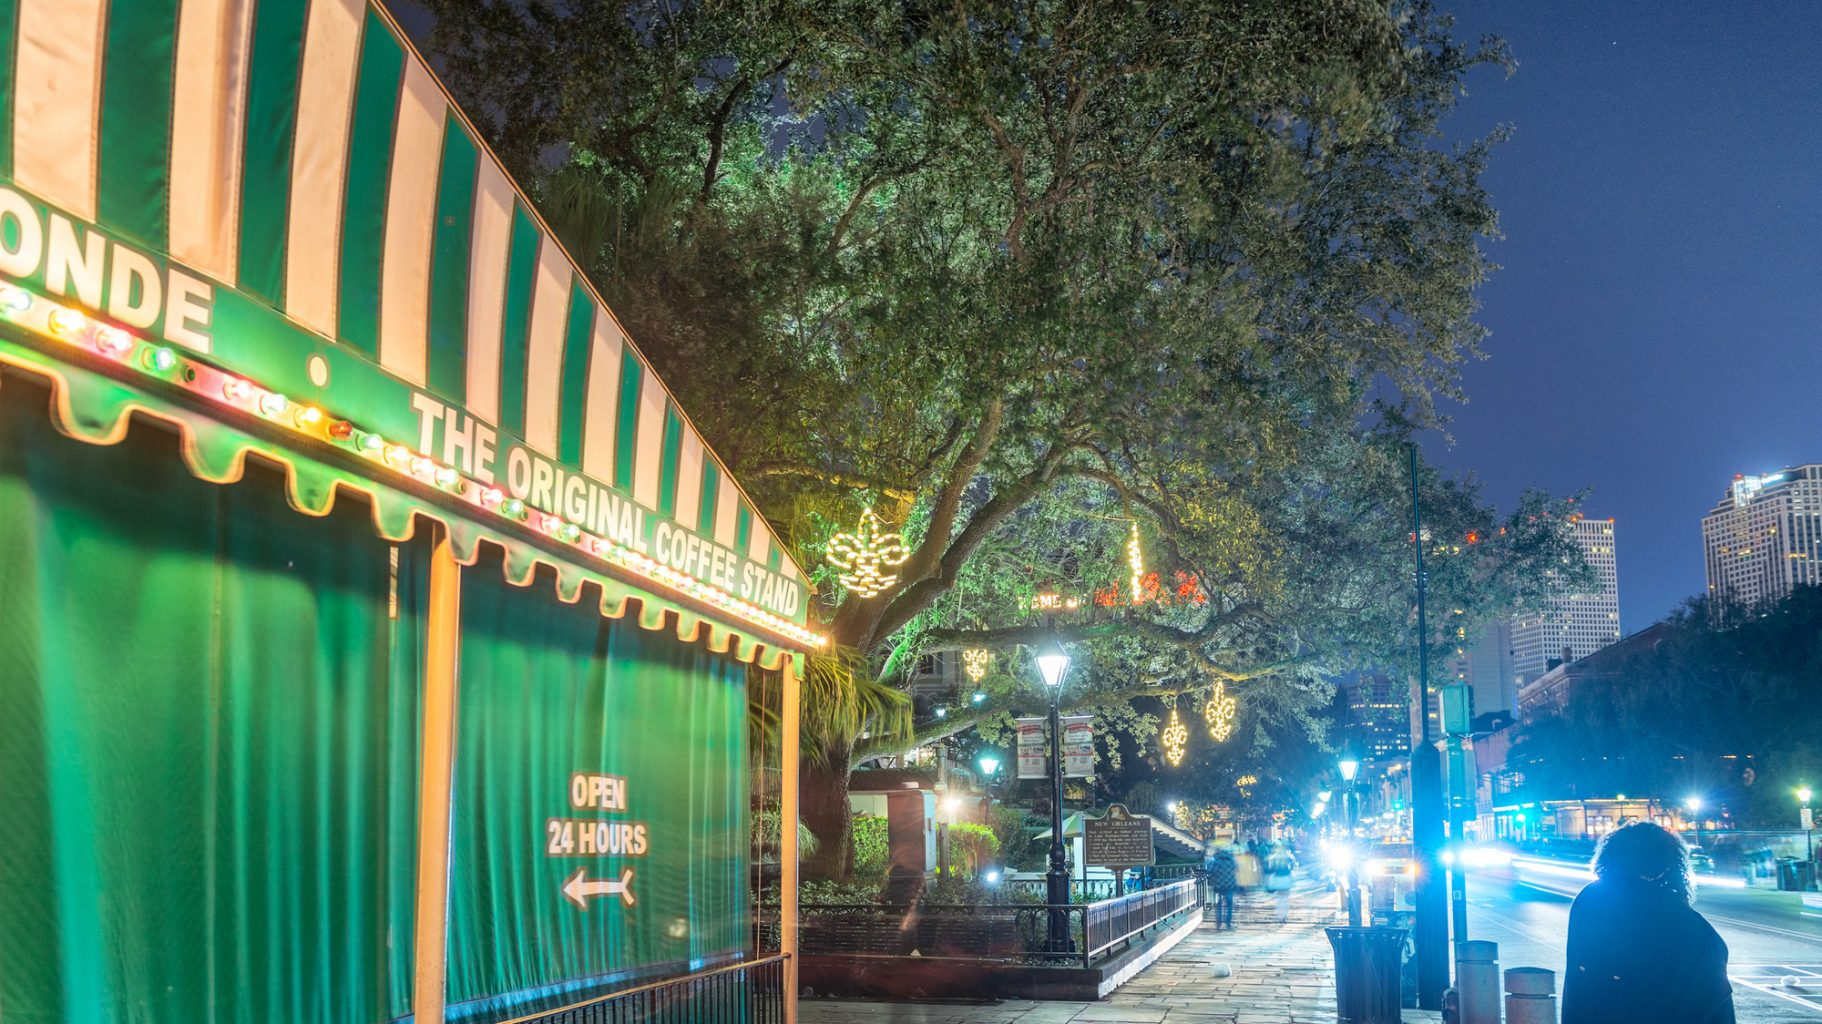 NEW ORLEANS - FEBRUARY 9, 2016: Night view of Cafe Du Monde on Mardi Gras.